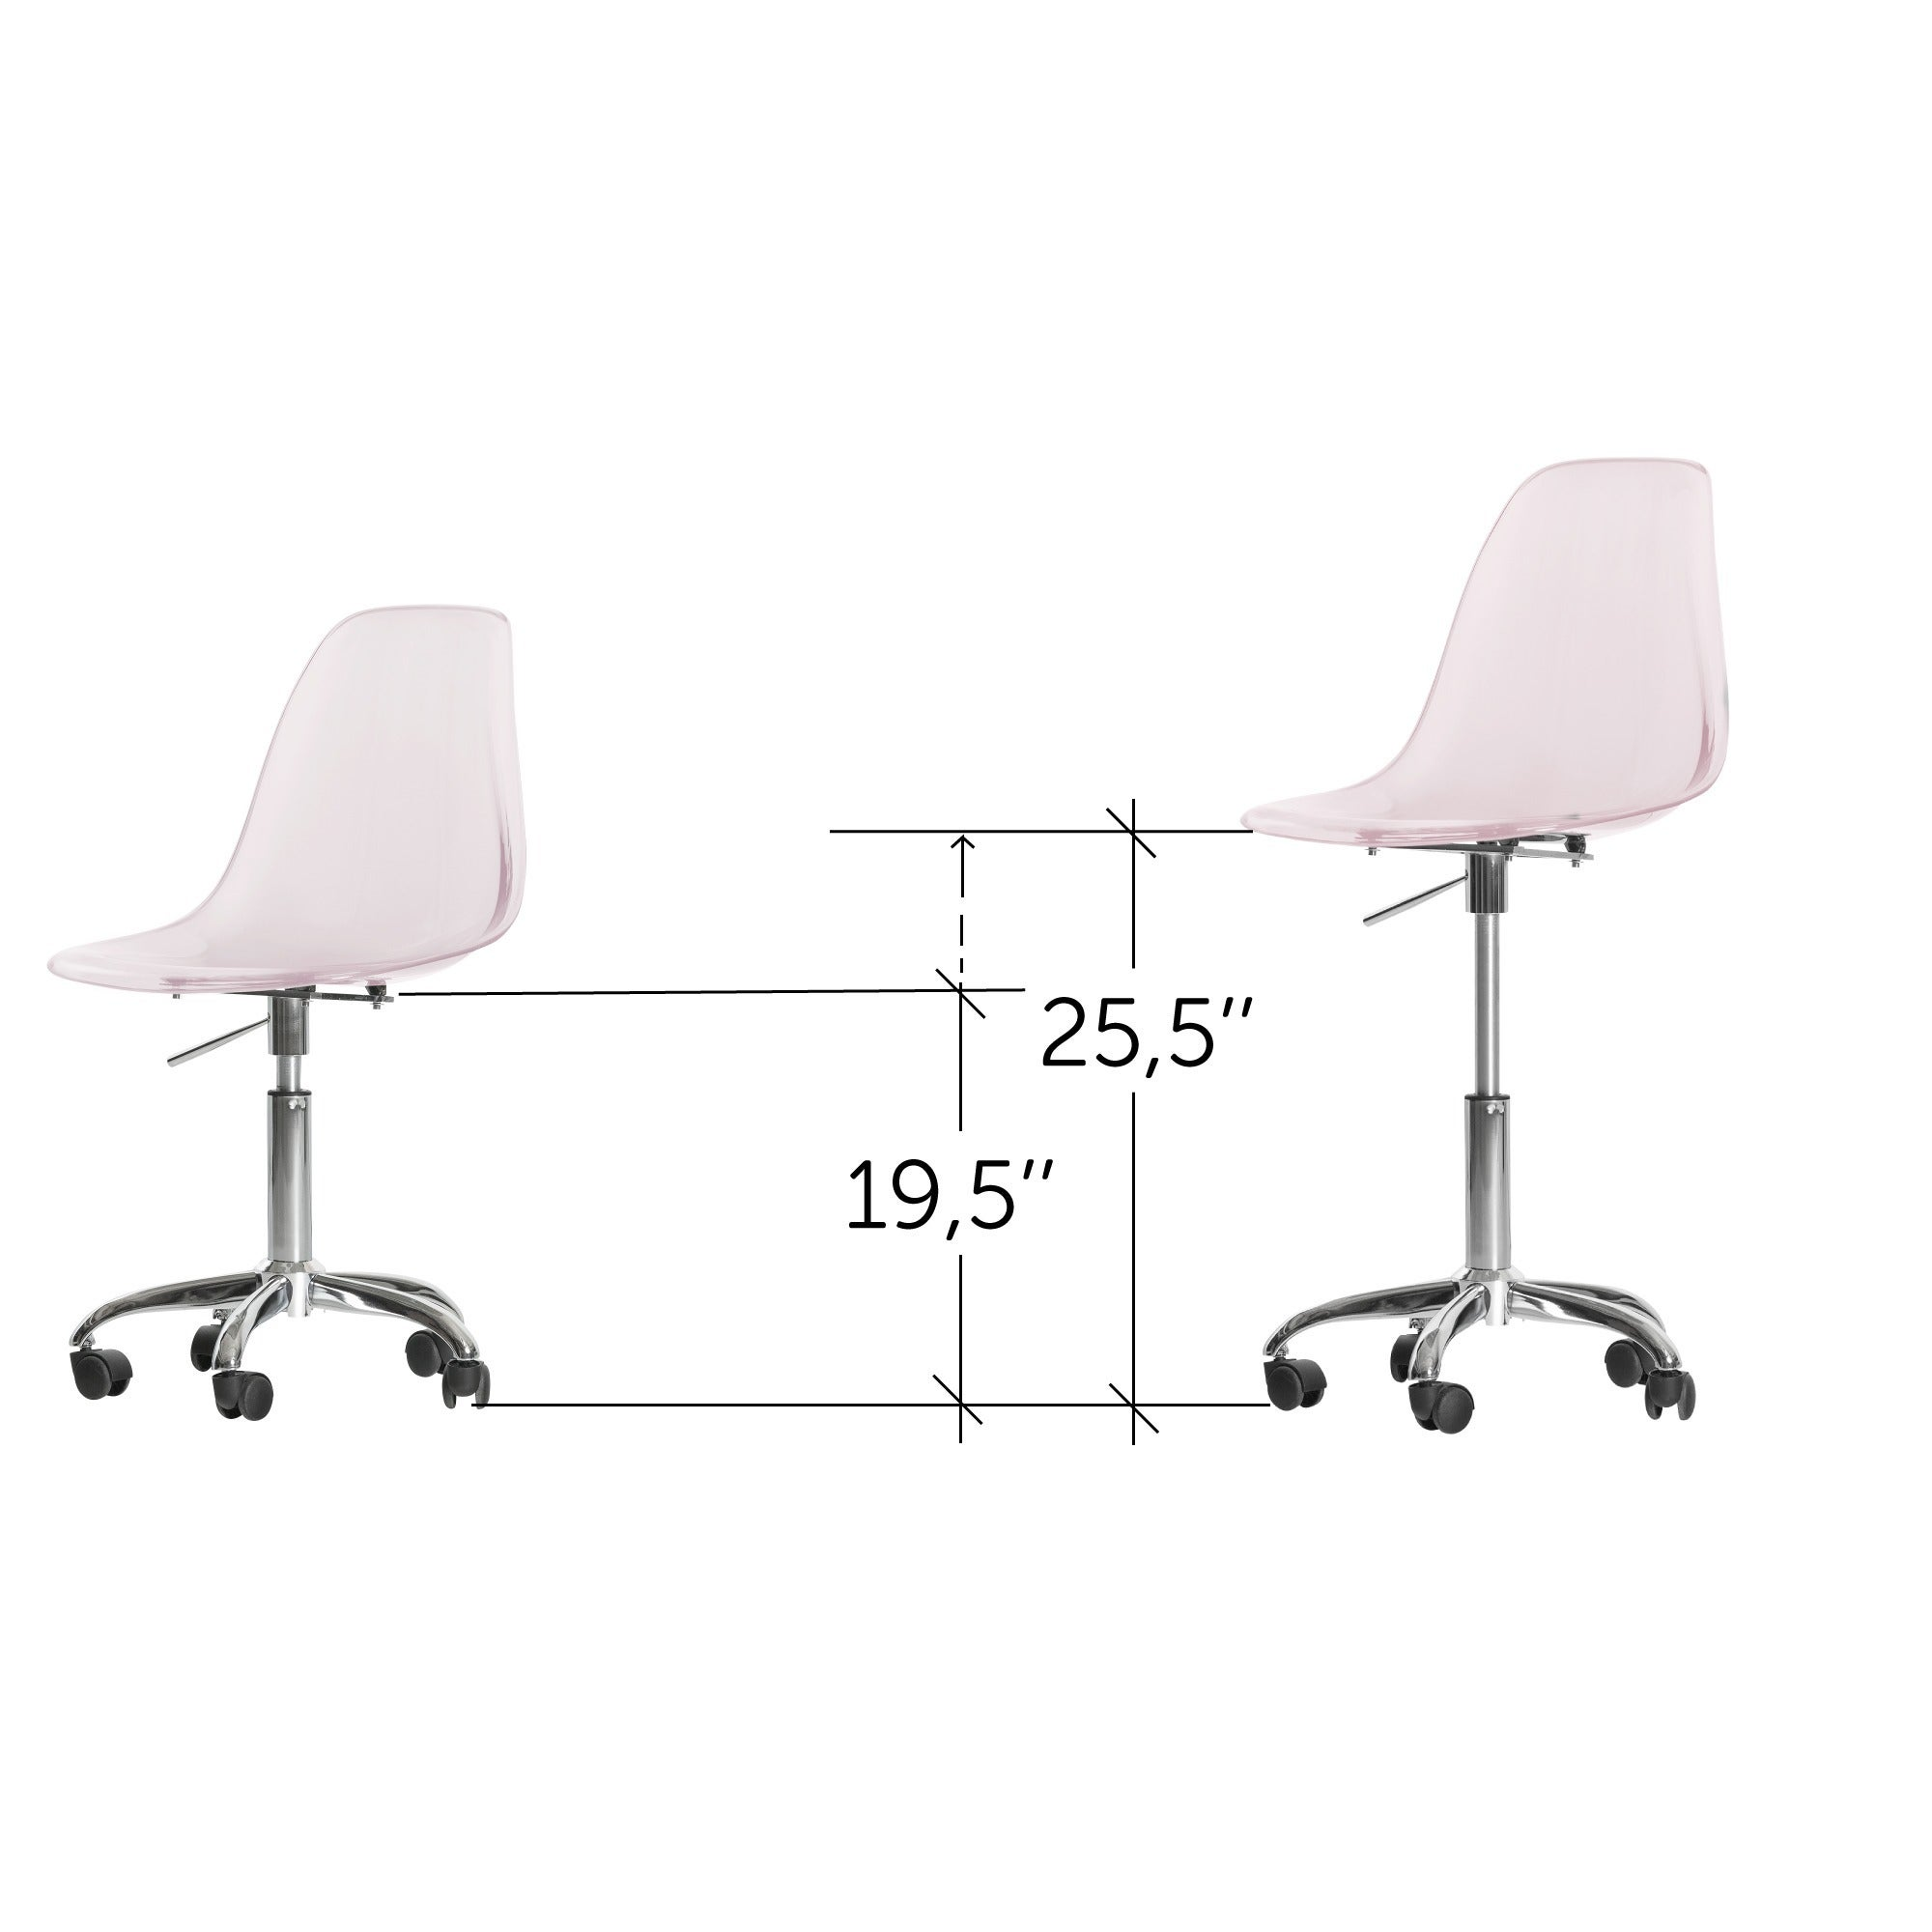 South S Clear Acrylic Office Chair With Wheels Free Shipping Today 11468395